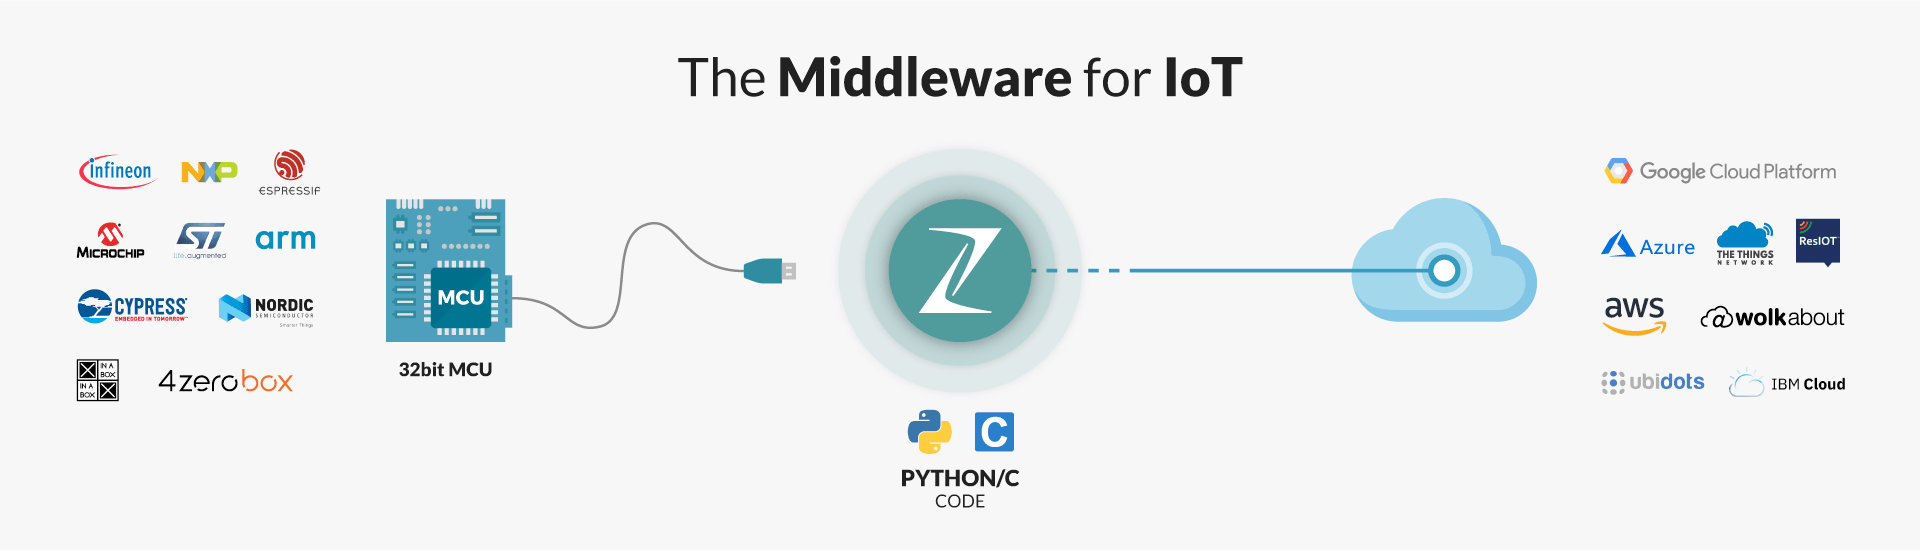 Zerynth - The Middleware for IoT using Python on Microcontrollers